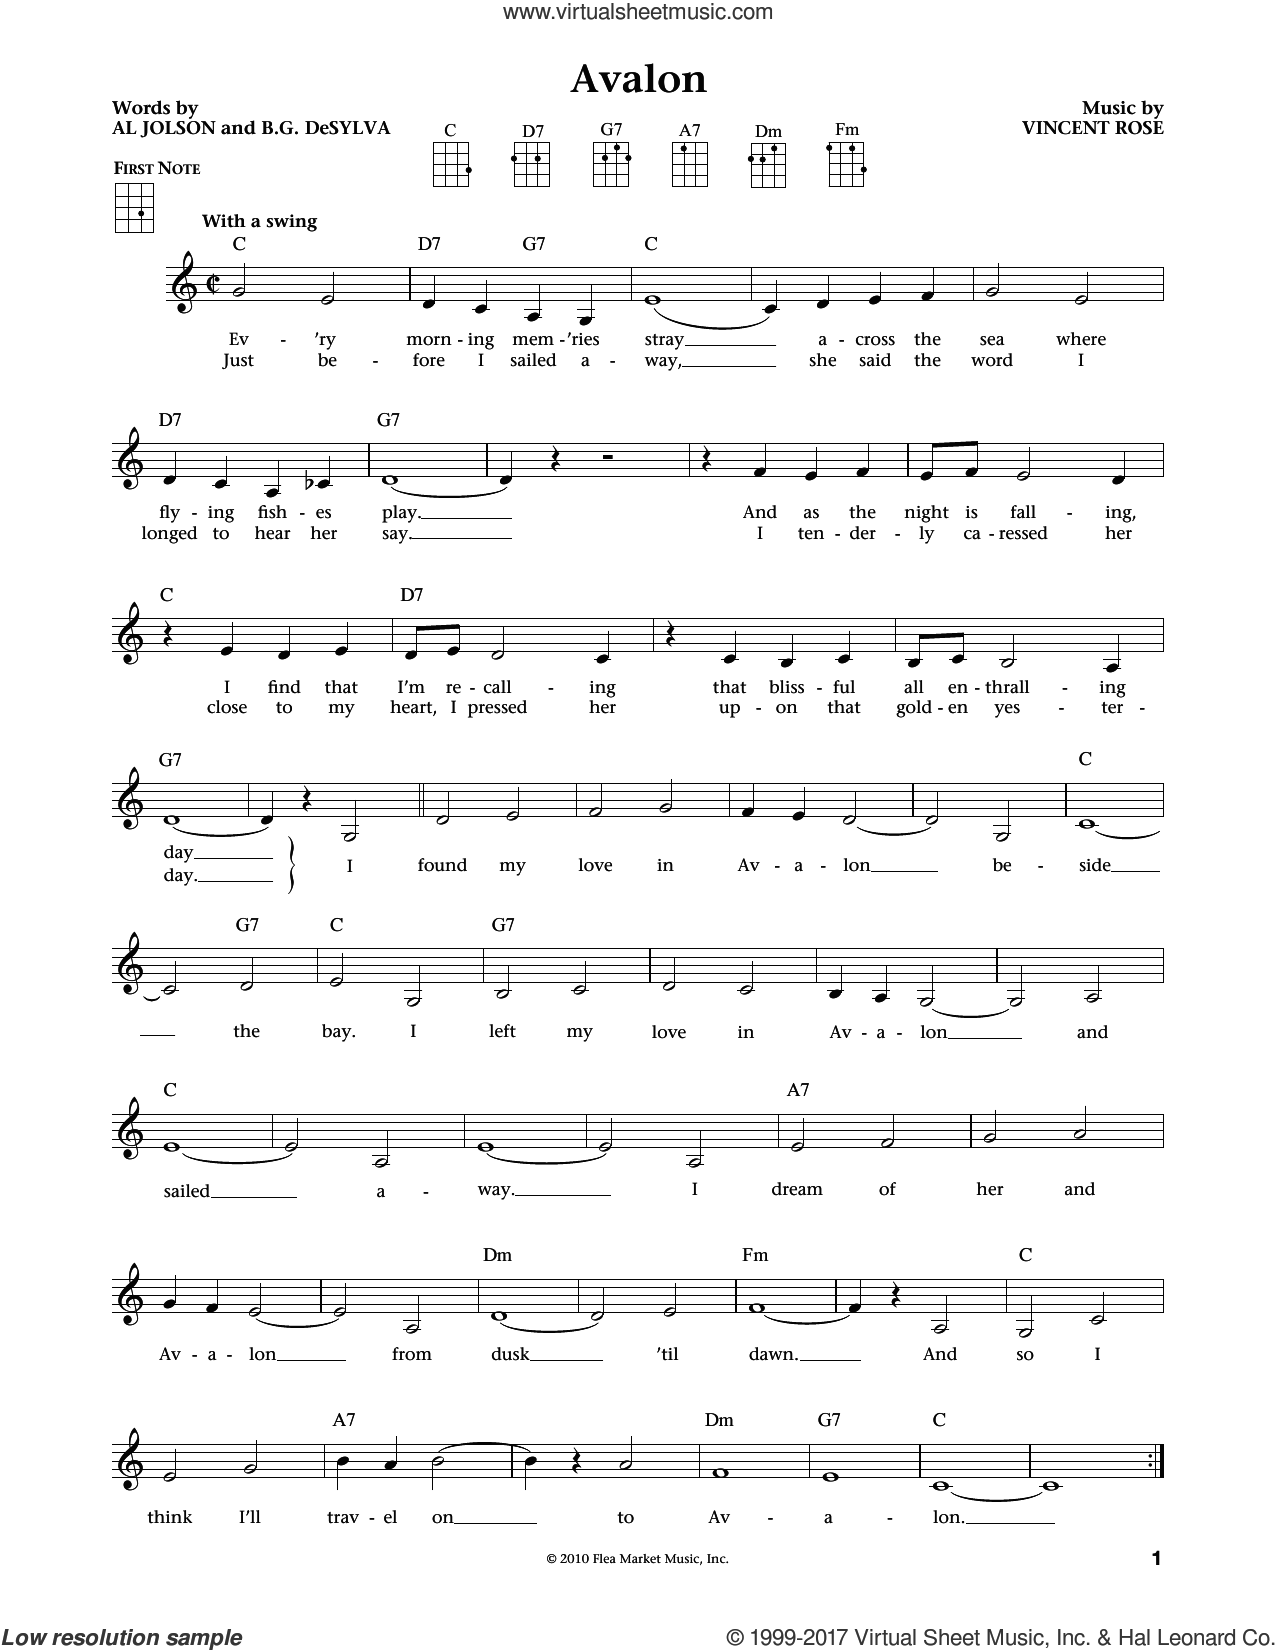 Avalon sheet music for ukulele by Buddy DeSylva, Jim Beloff, Liz Beloff, Al Jolson and Vincent Rose, intermediate